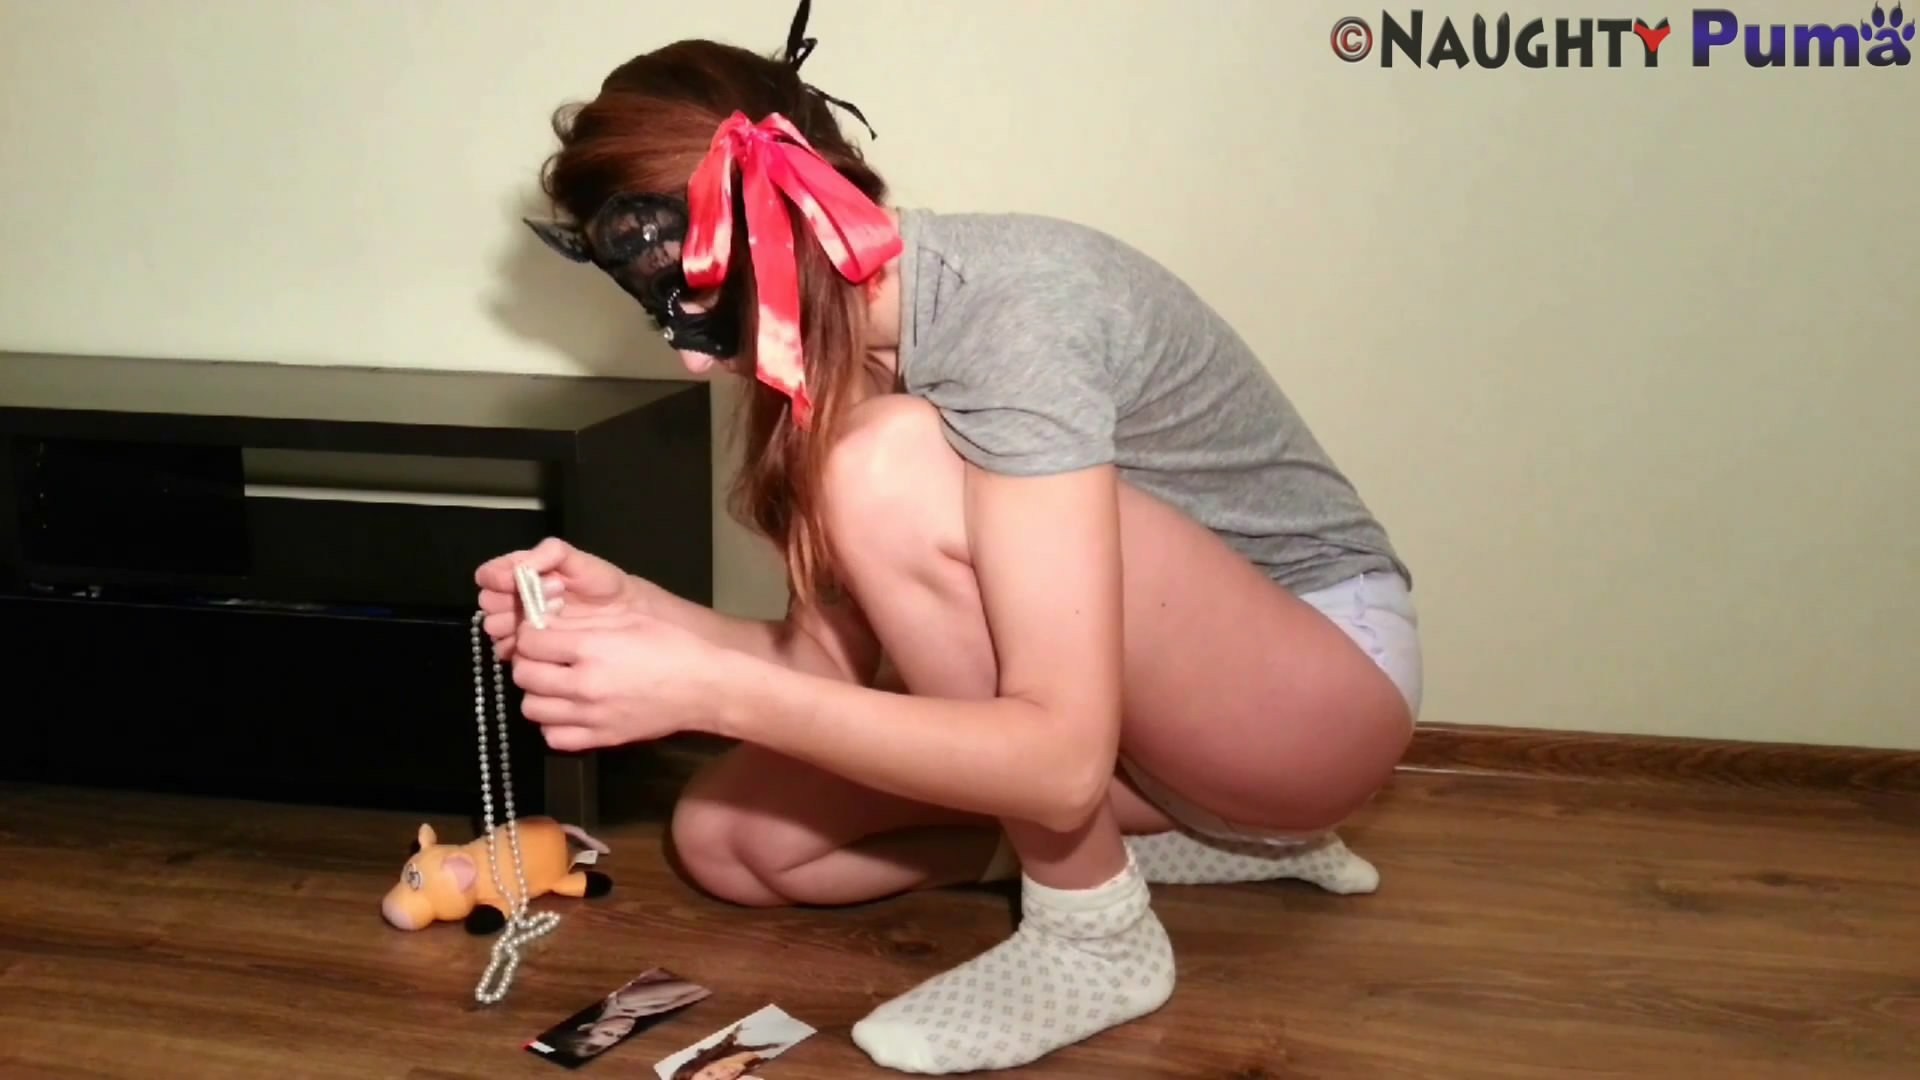 Trying To Be A Big Girl starring in video NaughtyPuma